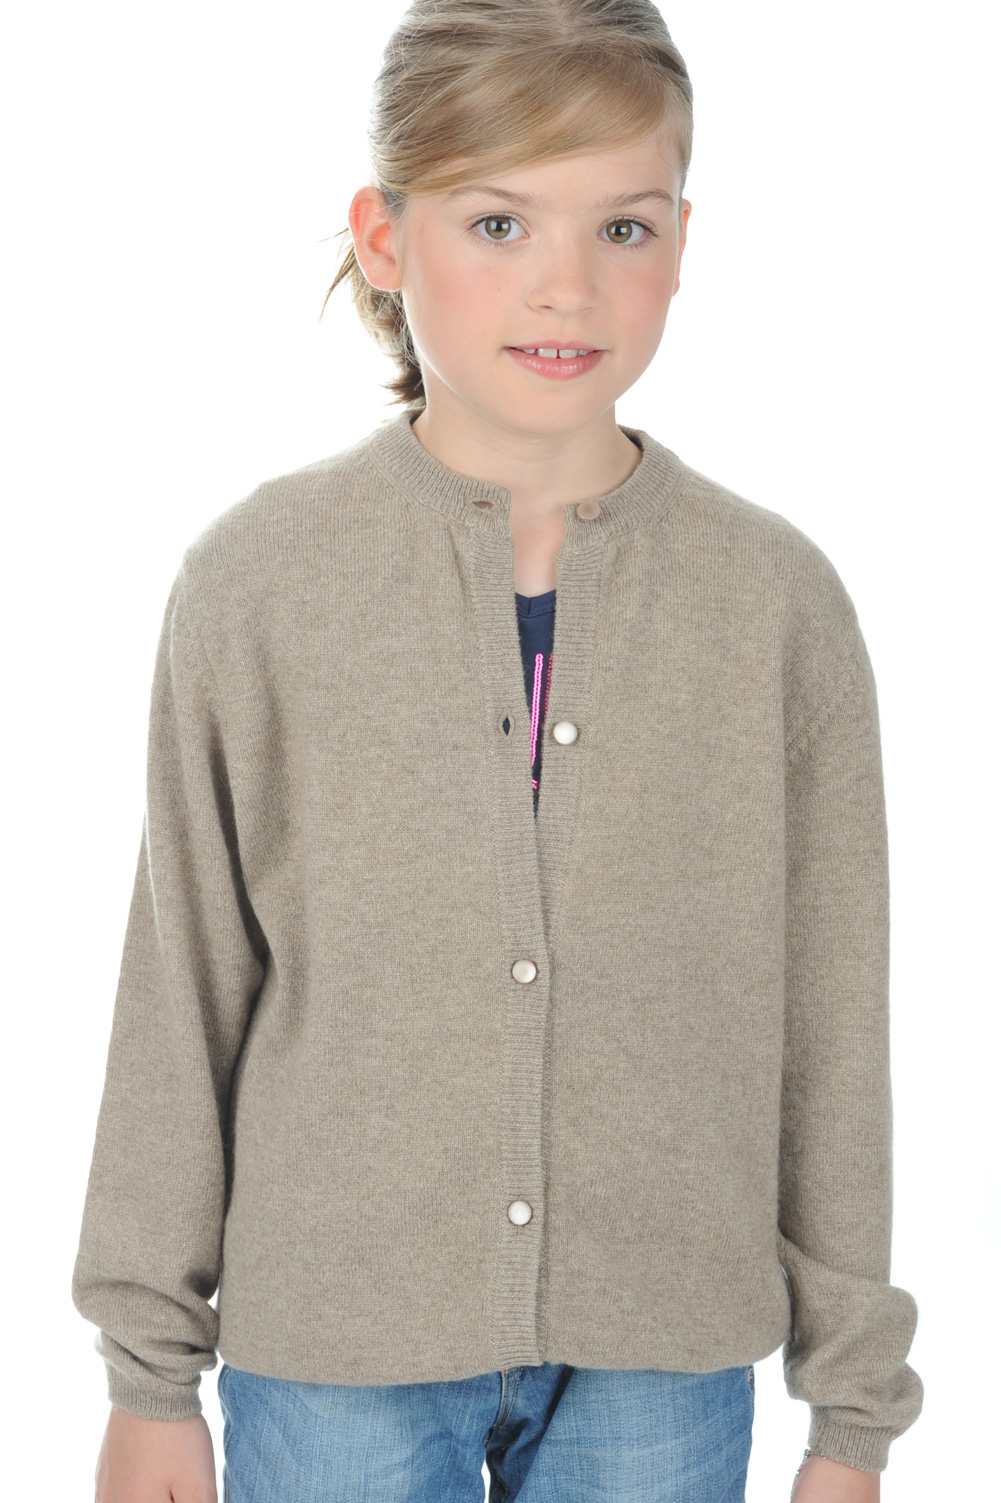 femme pulls enfants filles chloe girl natural brown chine 2 ans